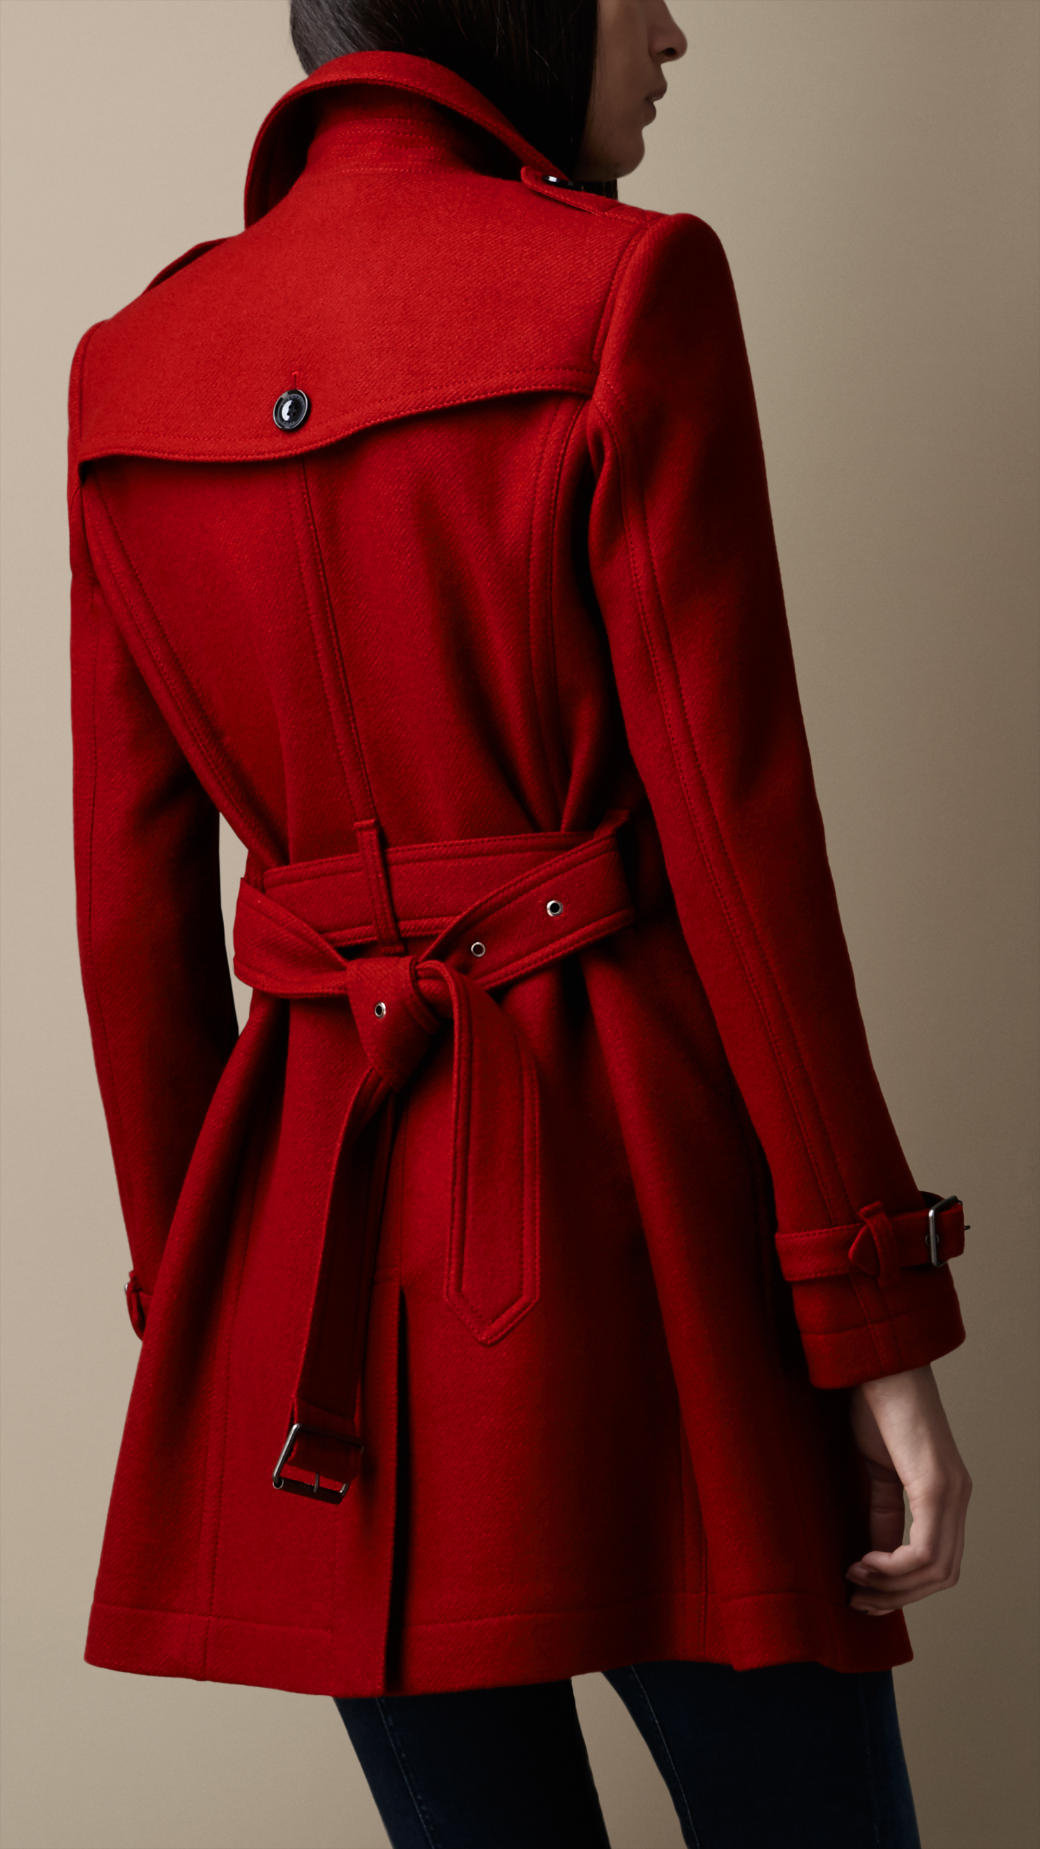 345c8365792e Lyst - Burberry Midlength Wool Blend Trench Coat in Red